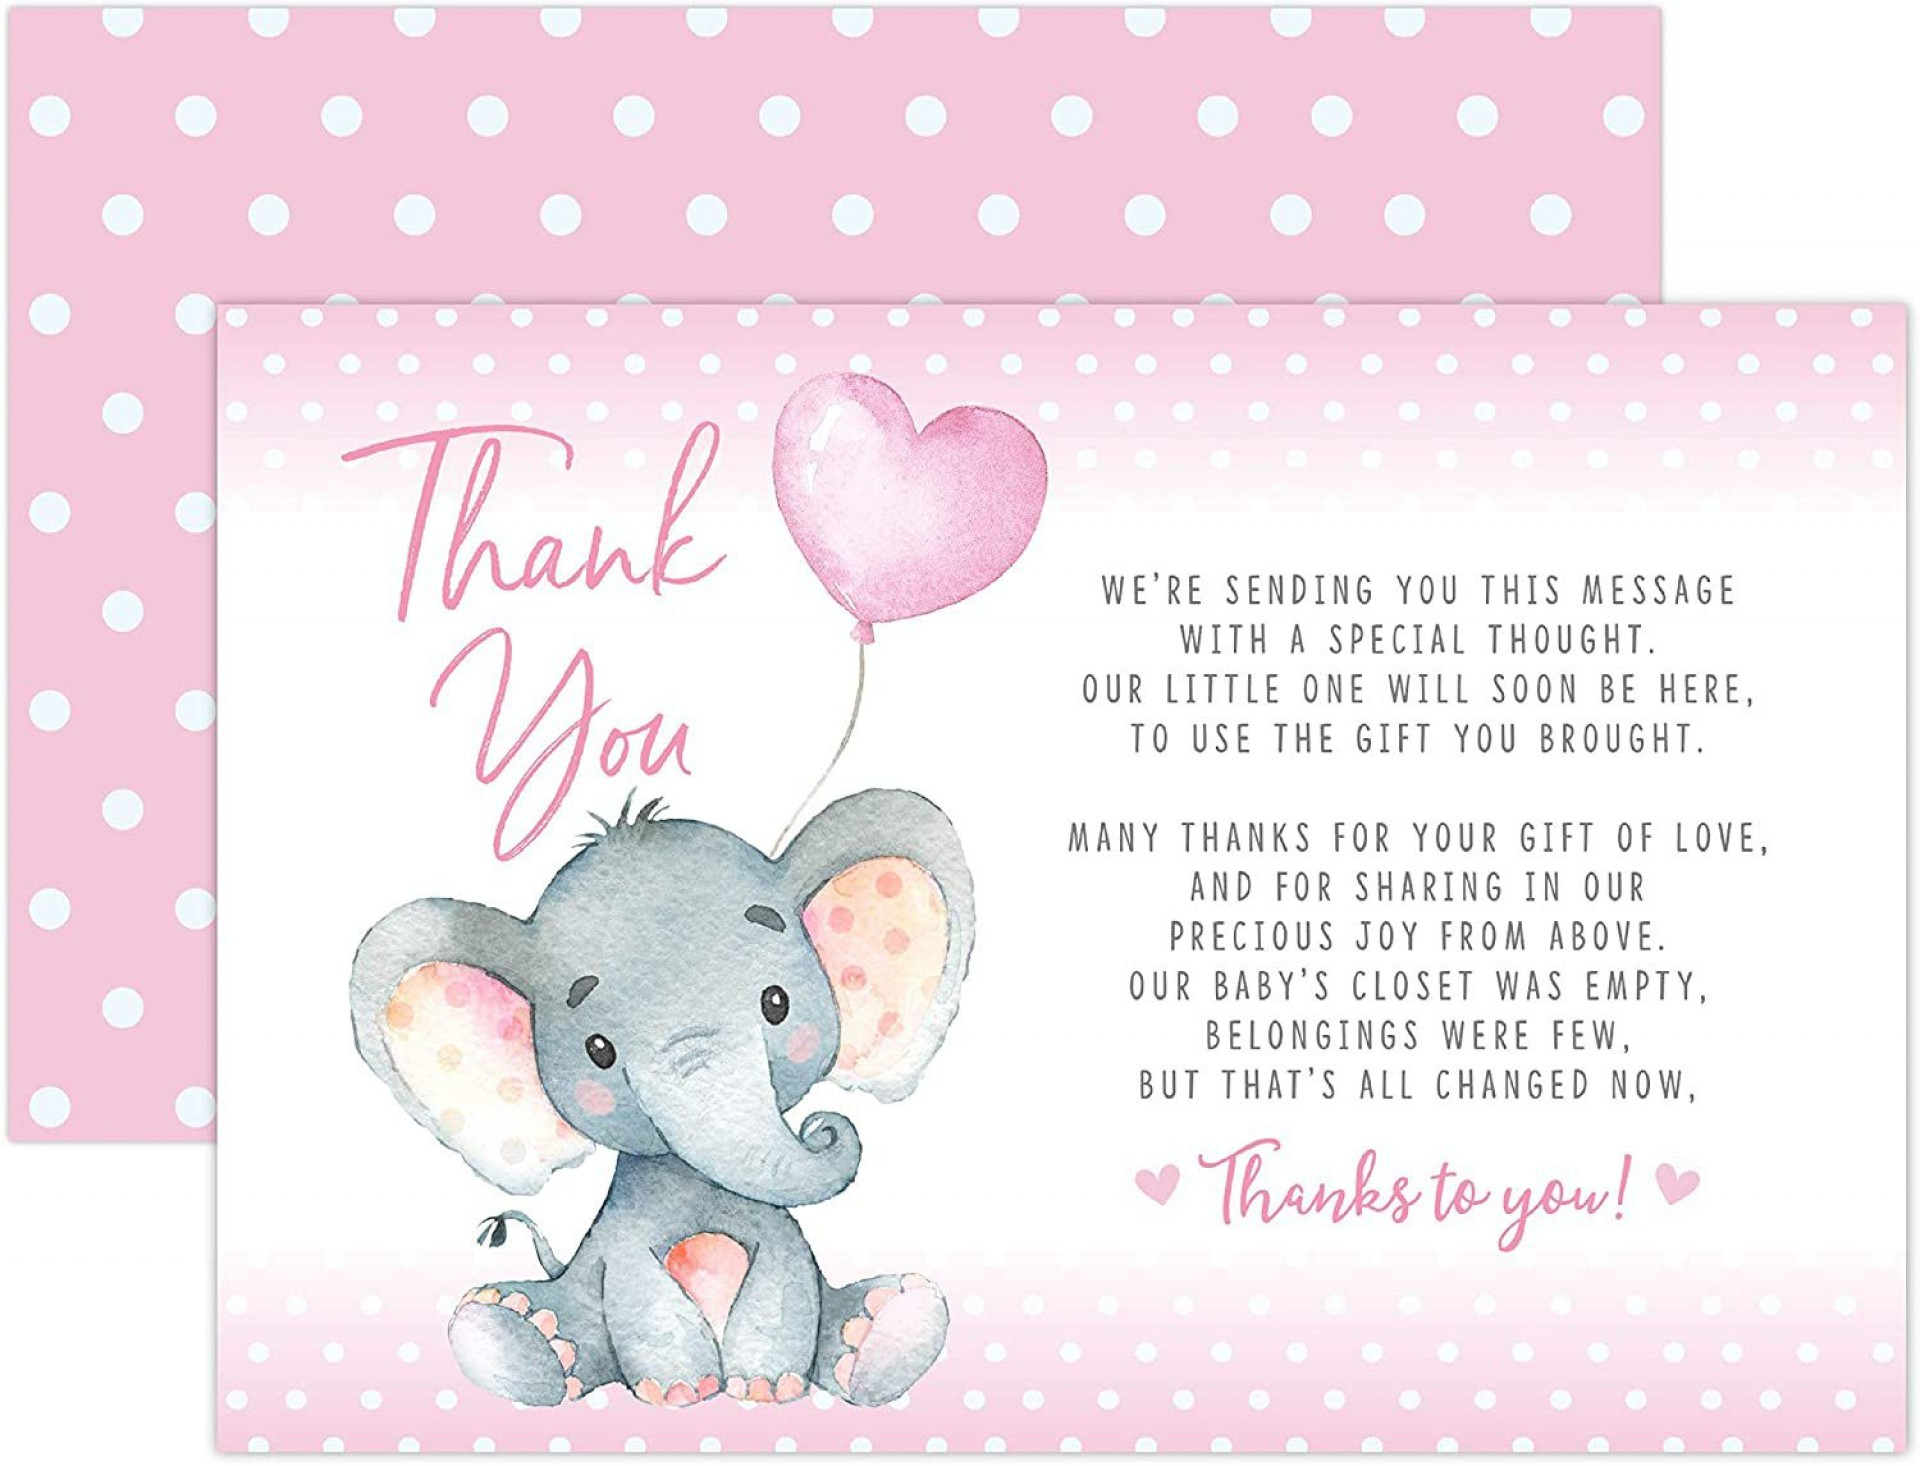 002 Amazing Thank You Card Wording Baby Shower Example  Note For Money Someone Who Didn't Attend Hostes1920